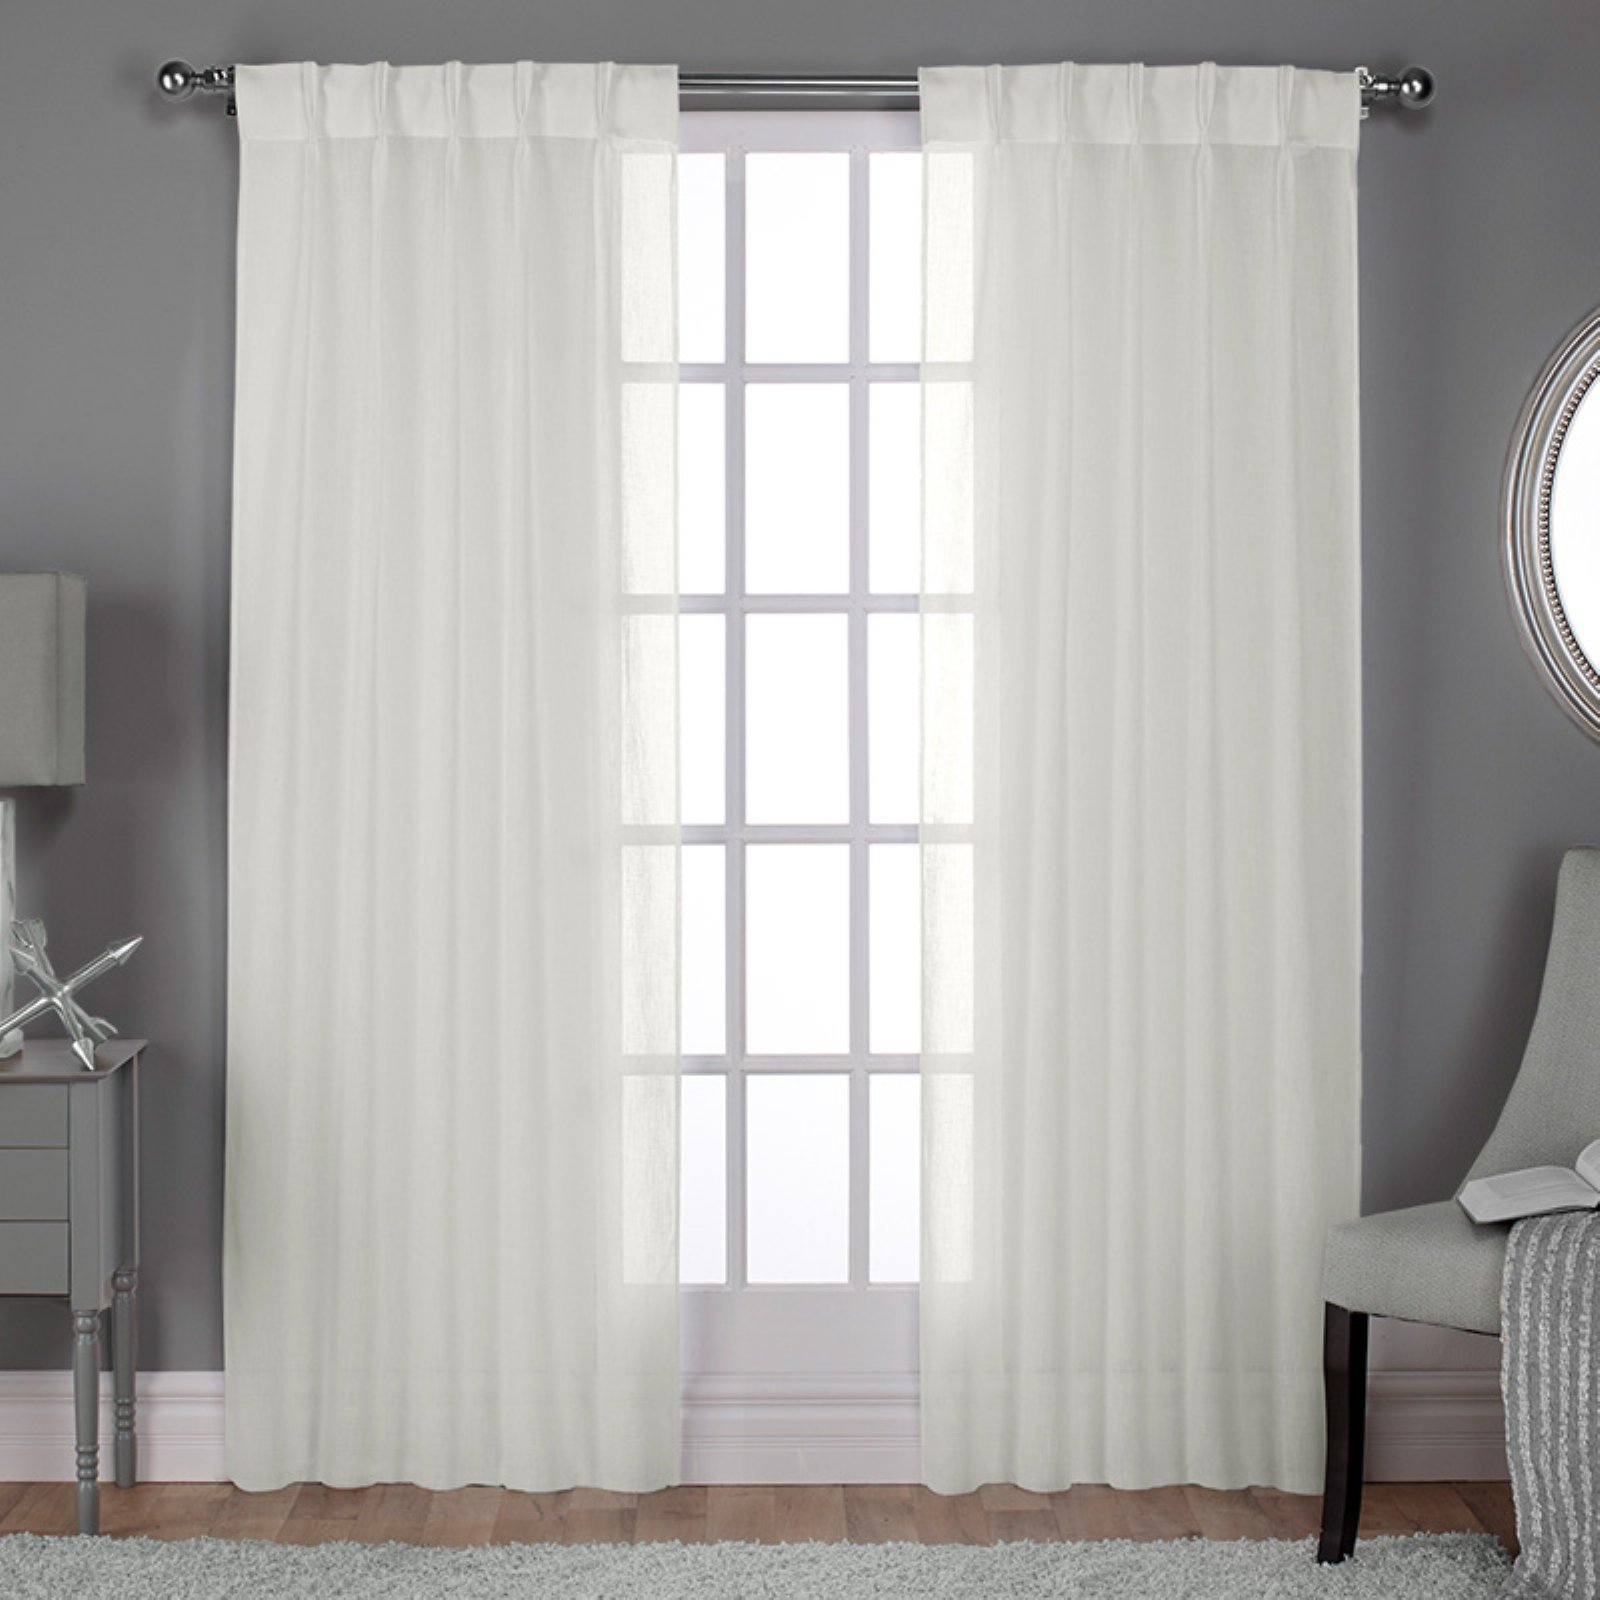 exclusive home curtains 2 pack belgian textured linen look jacquard sheer pinch pleat curtain panels